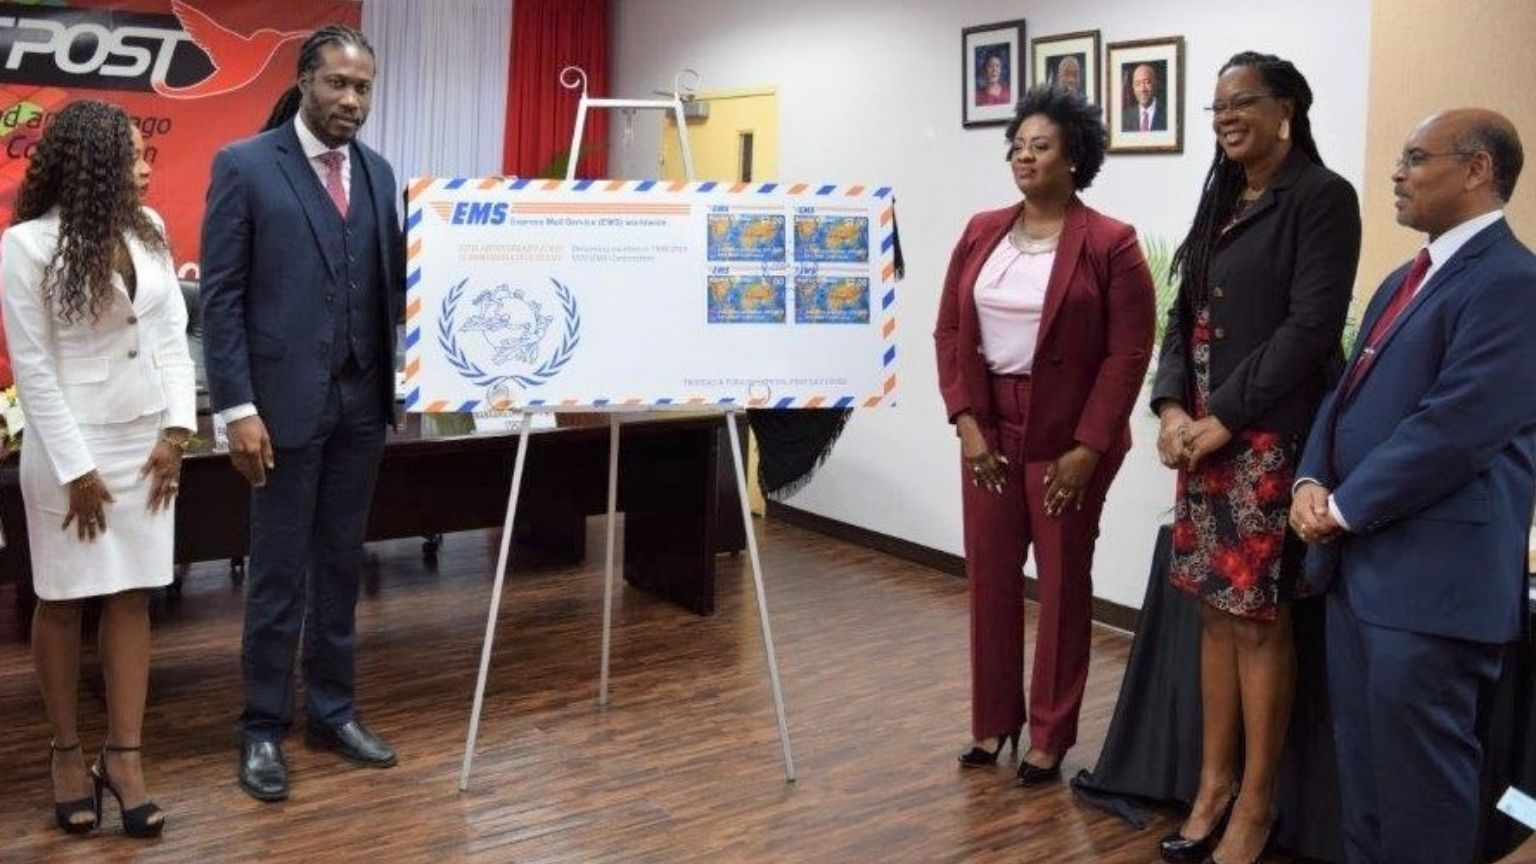 Parliamentary Secretary in the Ministry of Public Utilities , Adrian Leonce (centre, left),  unveils the commemorative stamp at yesterday's launch. Looking on are Natasha Phillips, Director of the Board of TTPost (left), Averline Scott, Postal Sector Specialist in MPU (centre, right), Arlene Johnson Lawrence, Programme Manager of Sectorial Programmes and Projects Unit in MPU and George Alexis, Managing Director (Ag.) of TTPost.